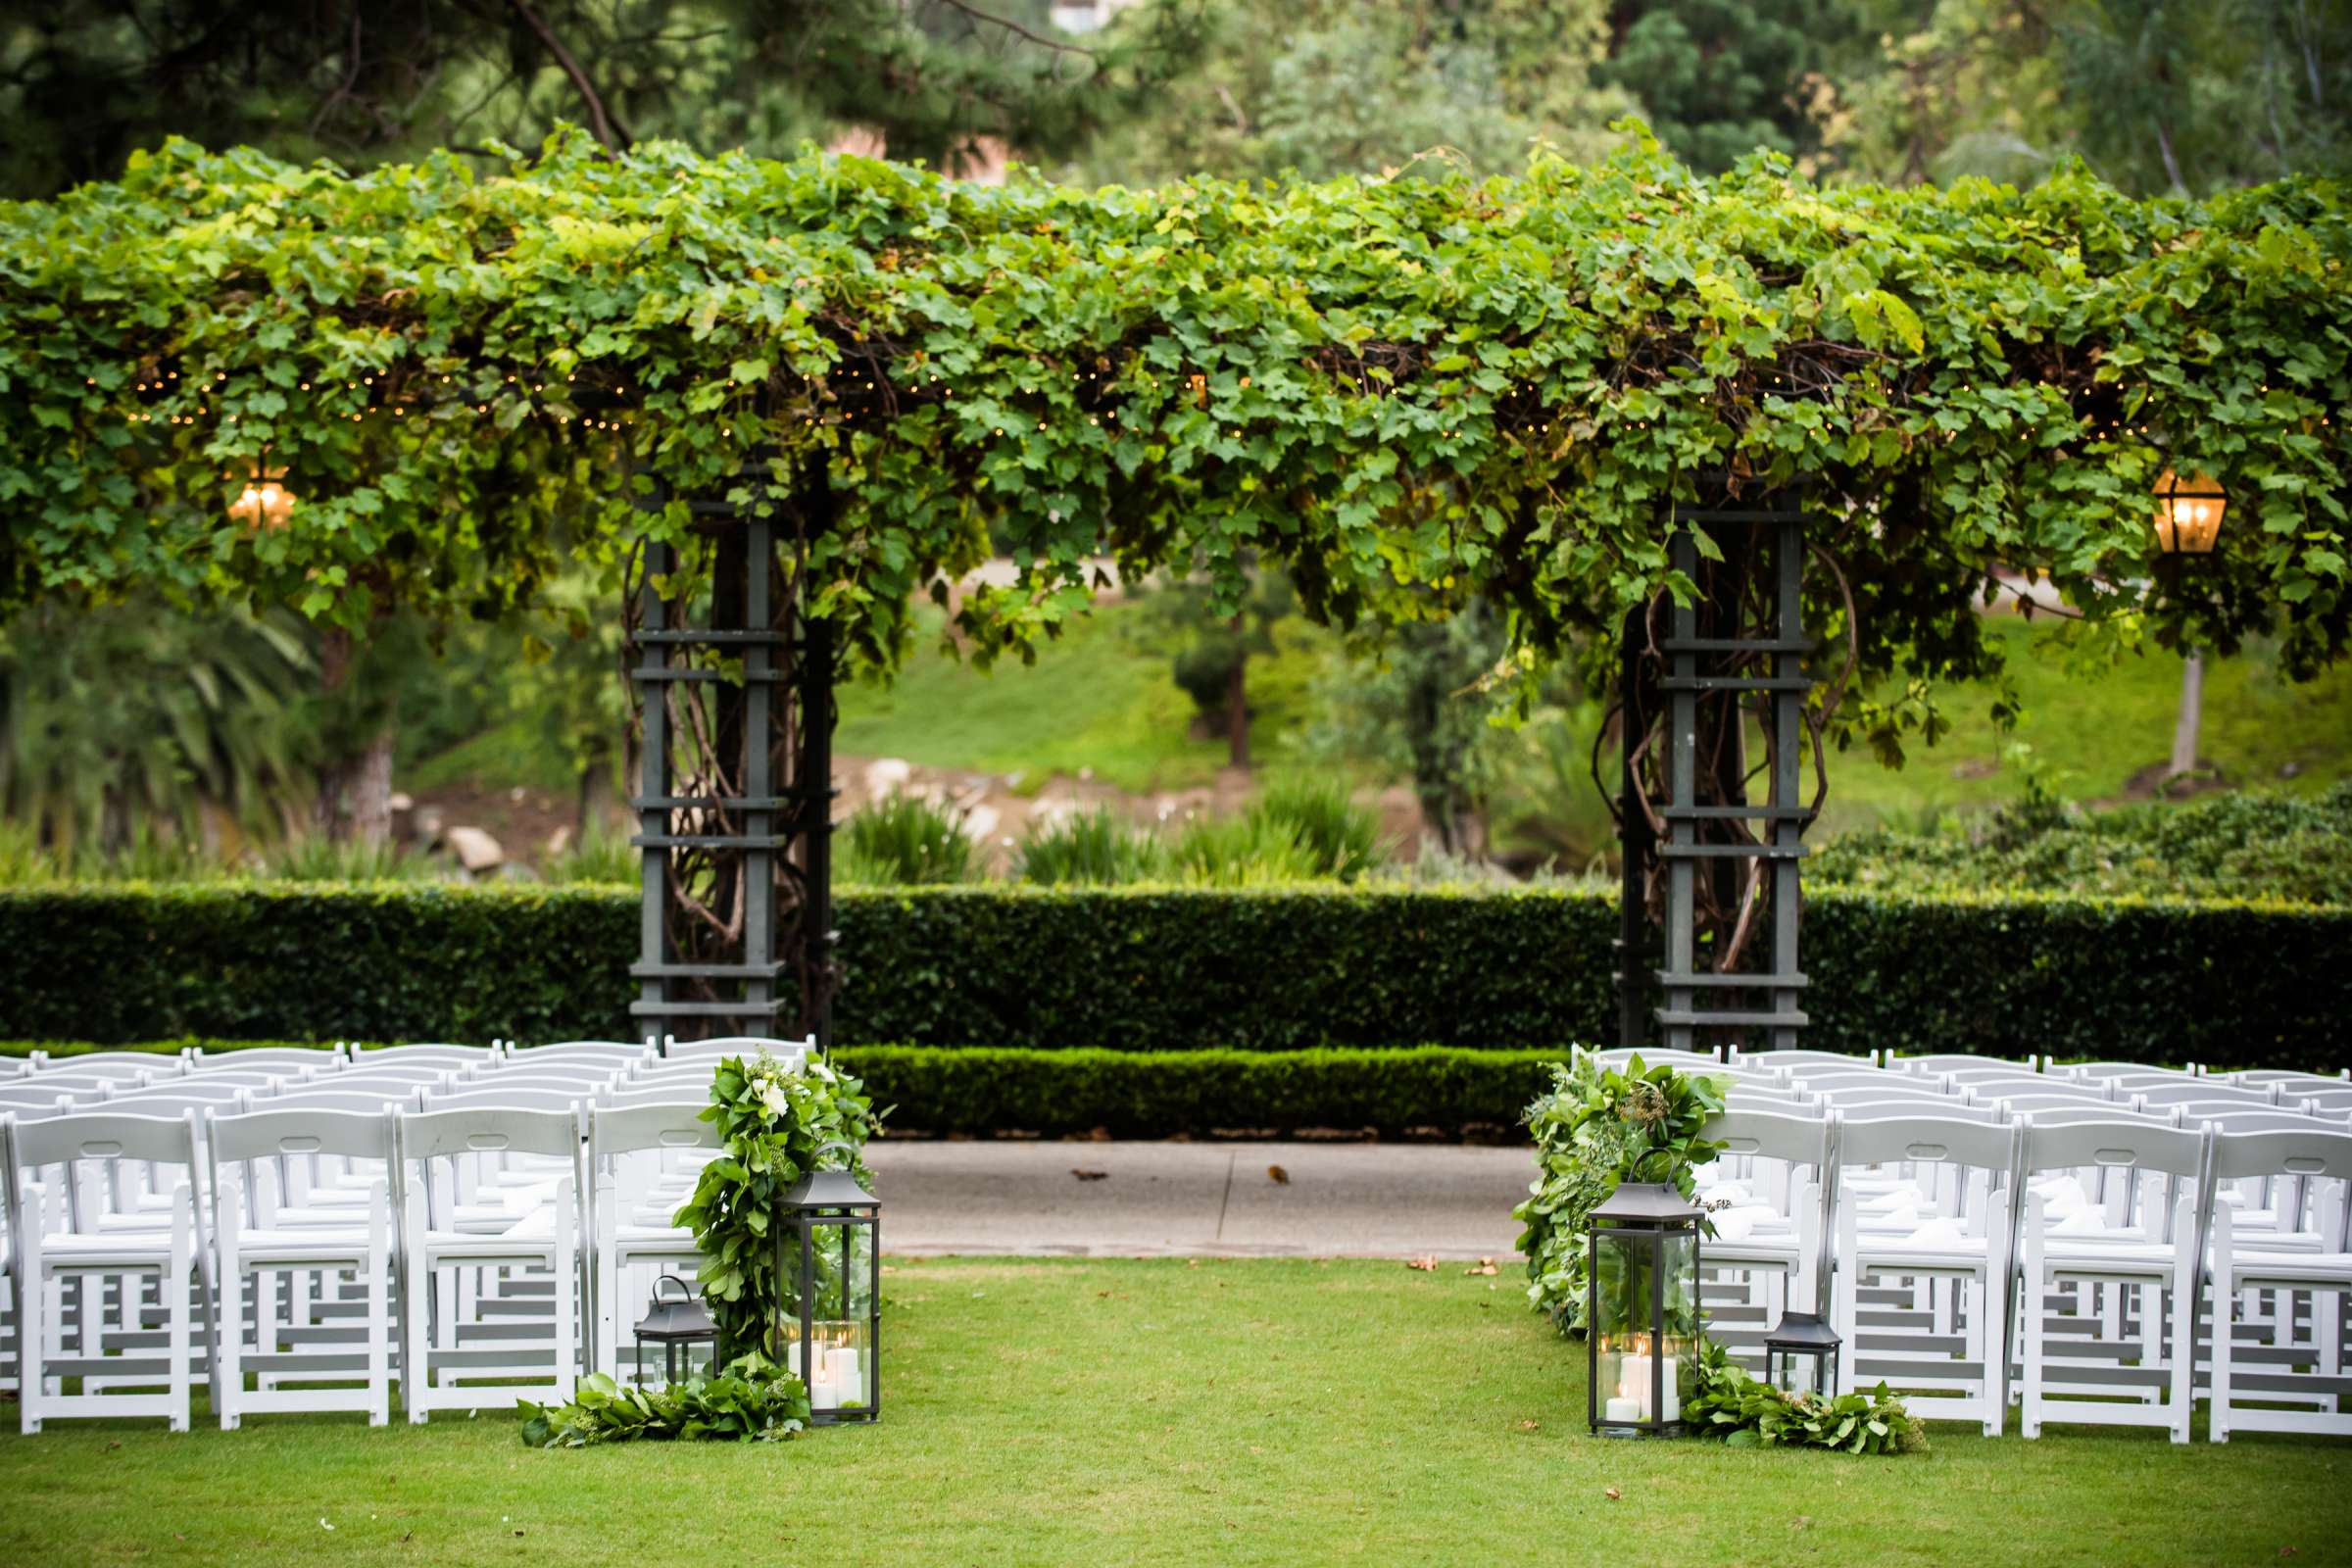 Rancho Bernardo Inn Wedding coordinated by Très Chic Events, Stefania and Nicholas Wedding Photo #98 by True Photography